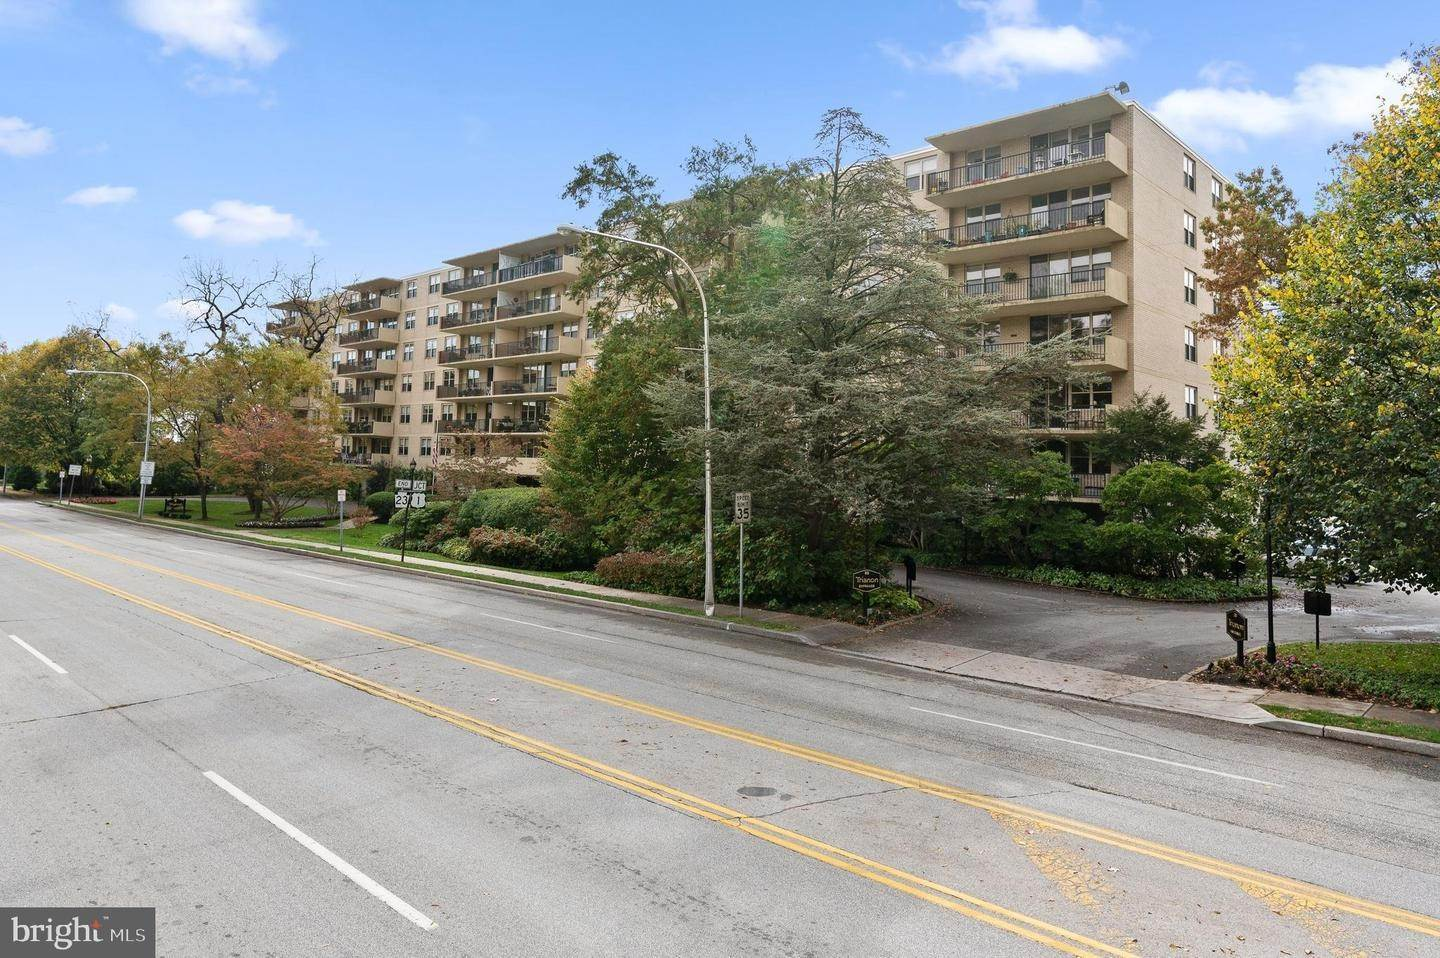 Property for Sale at 20 CONSHOHOCKEN STATE RD #412 Bala Cynwyd, Pennsylvania 19004 United States